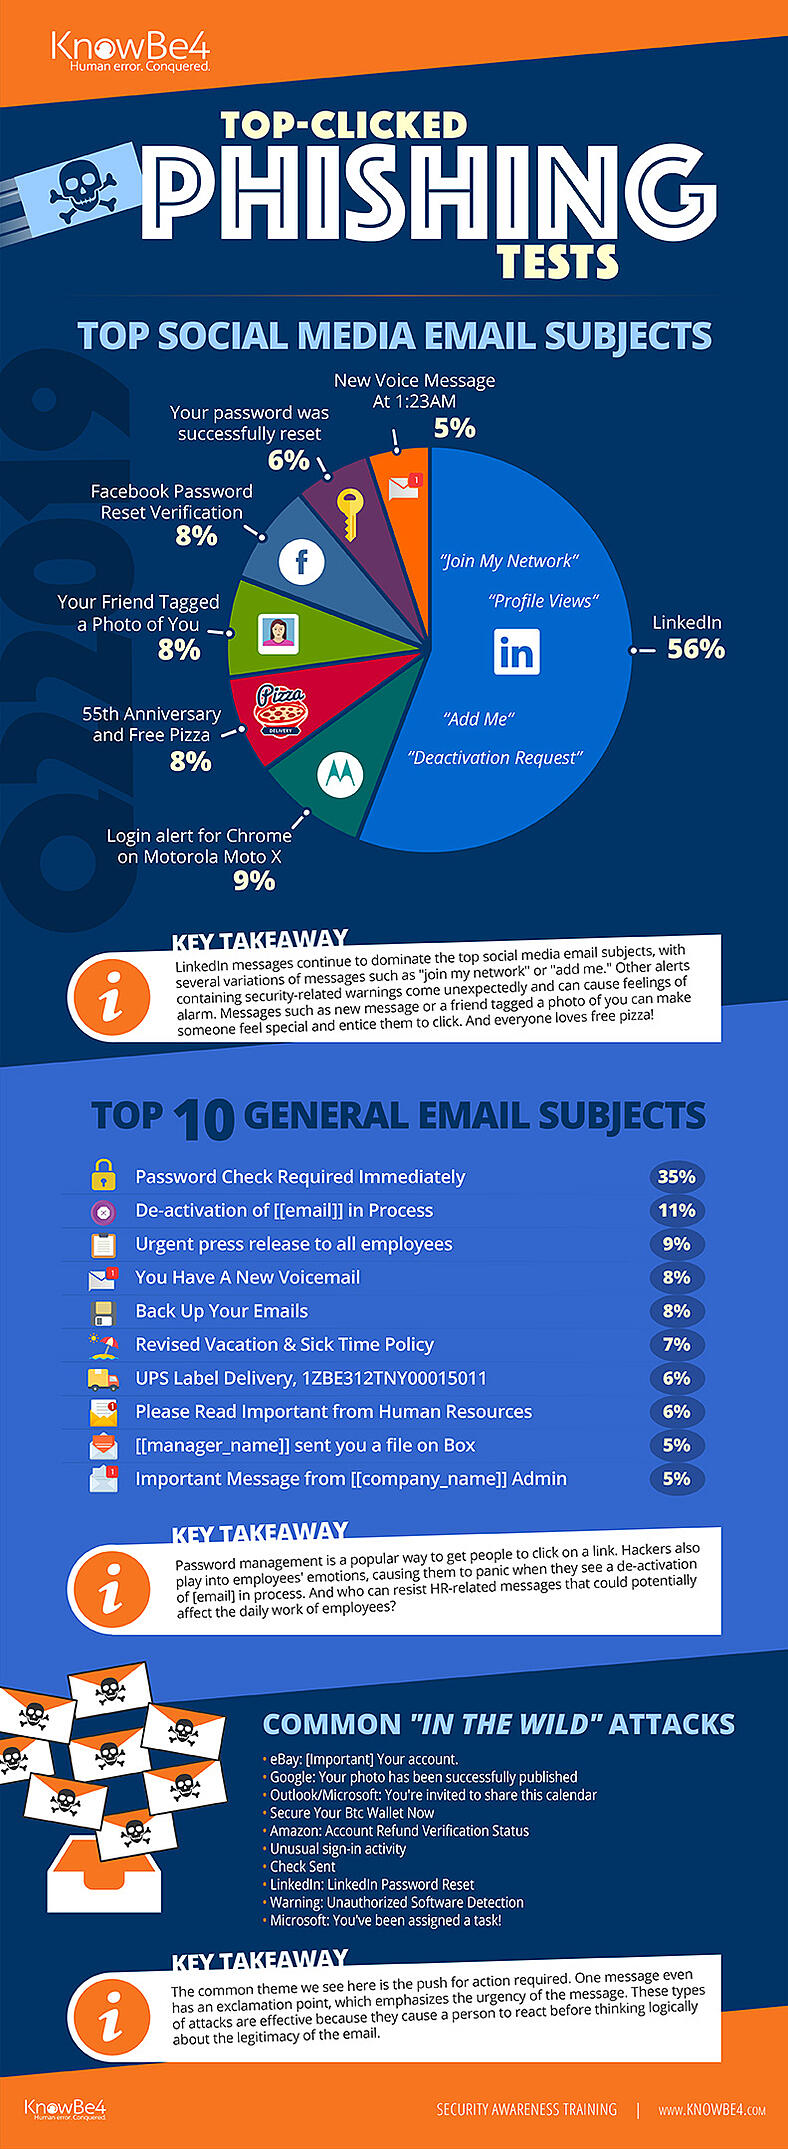 Q2-2019-Top-Clicked-Phishing-Email-Subjects-Infographic